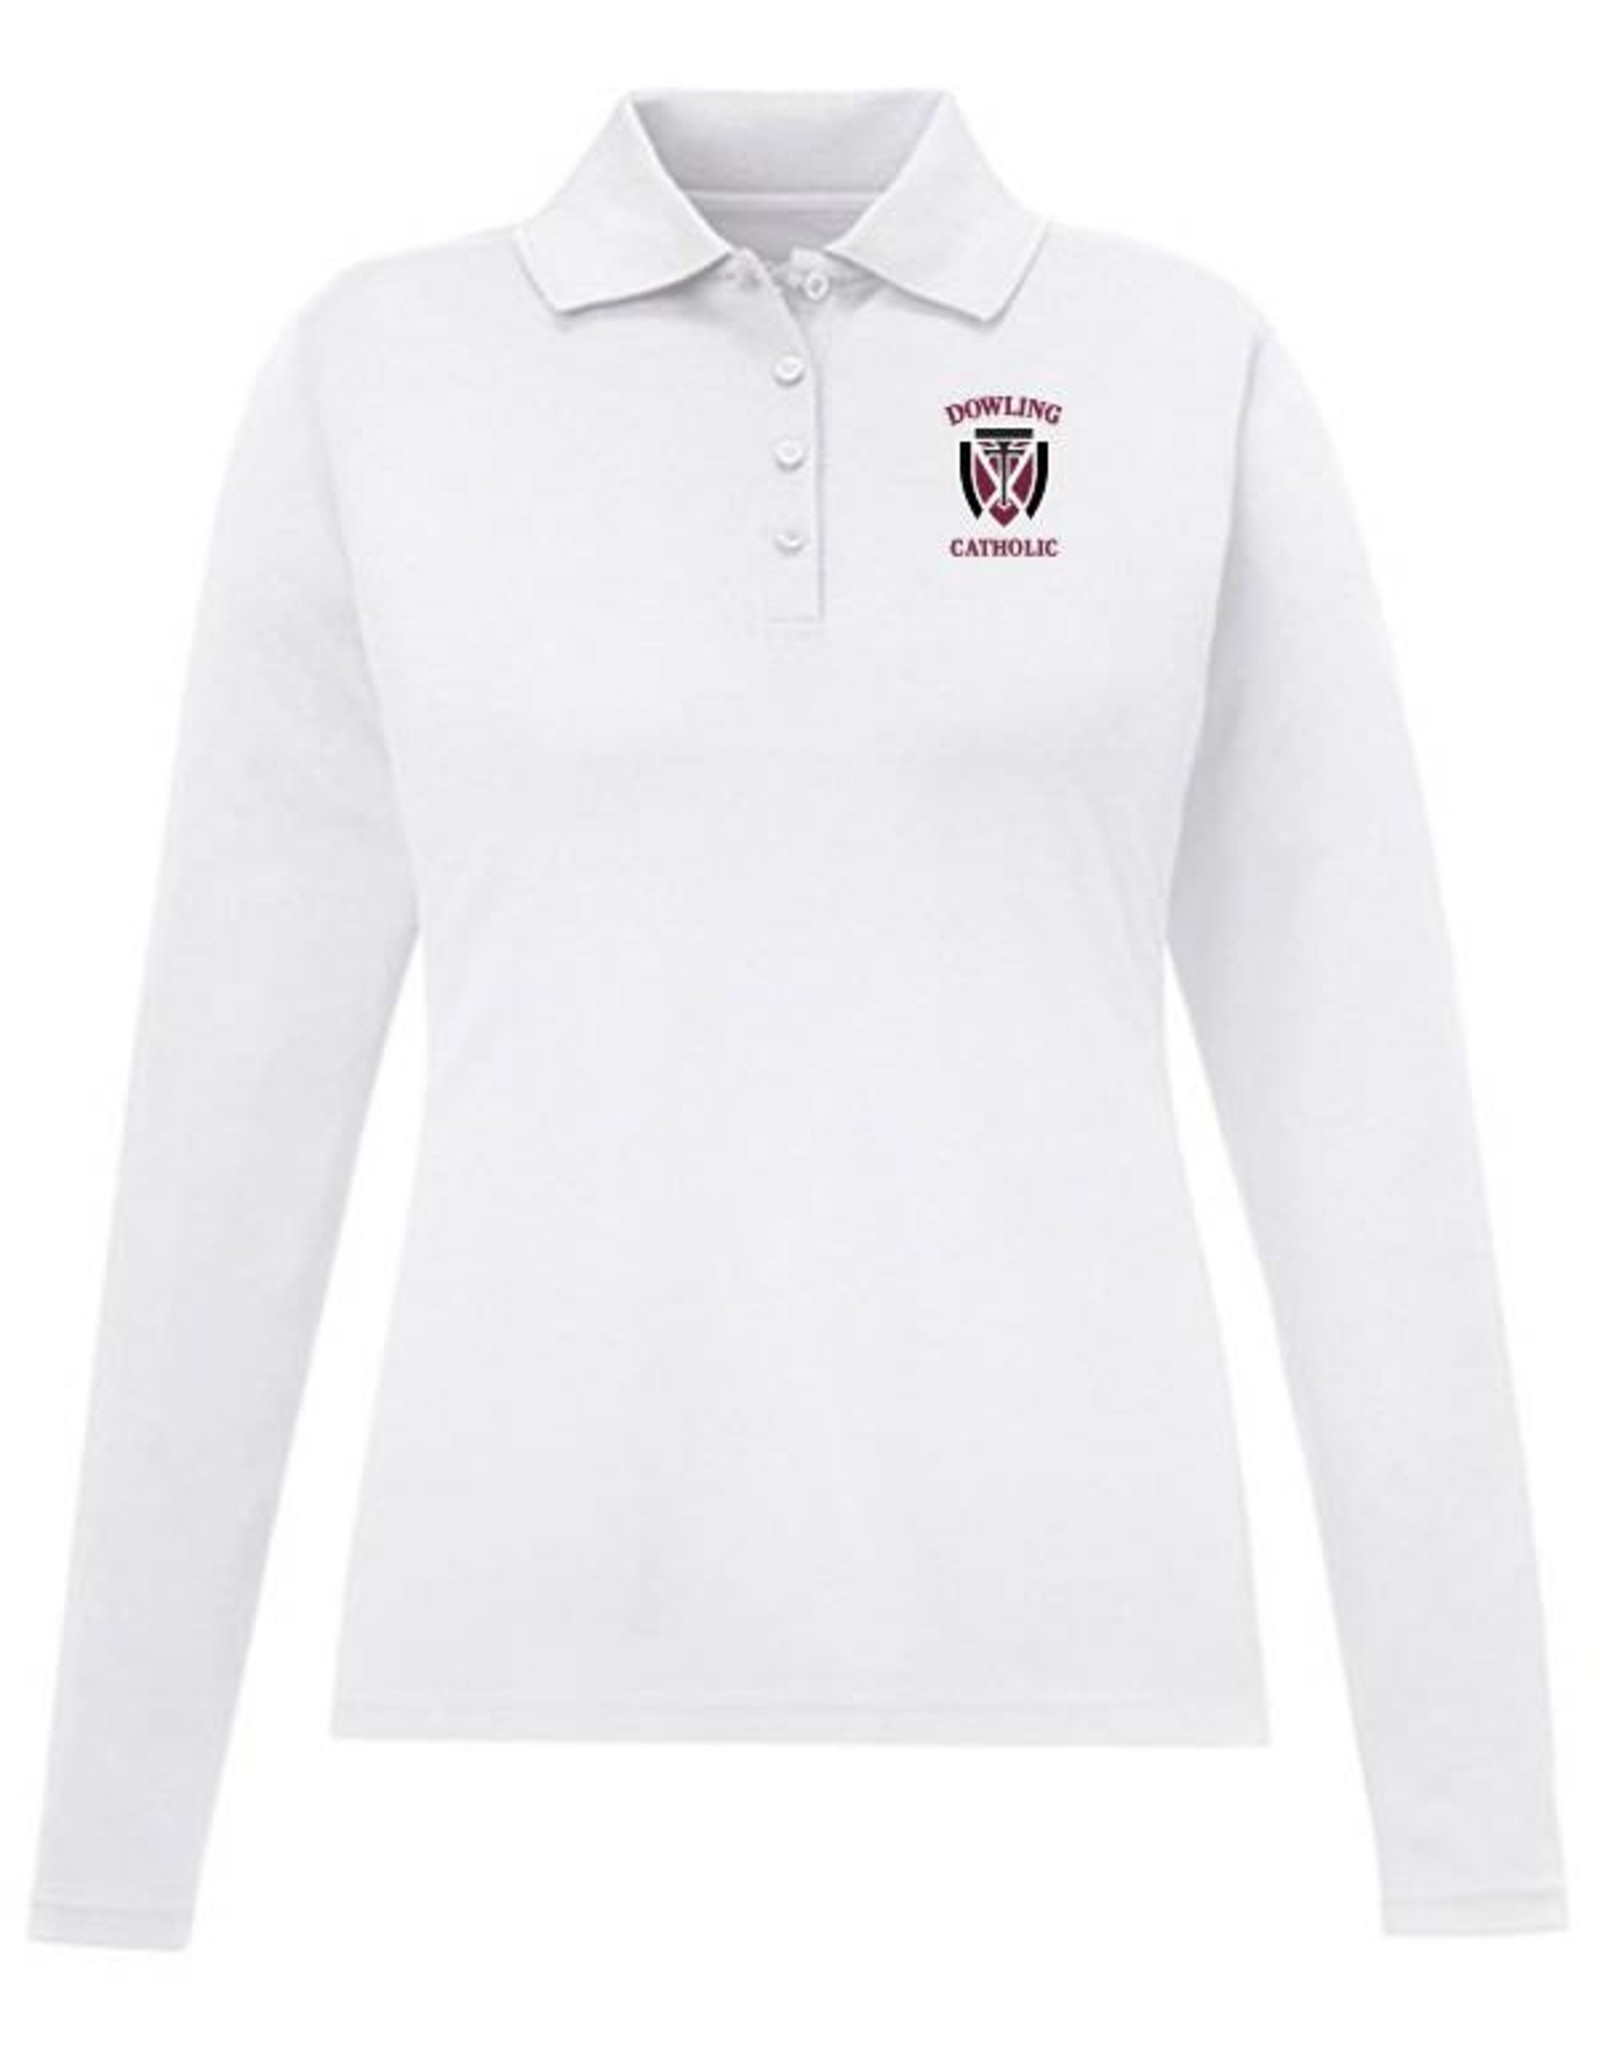 Core EXTENDED SIZE  Women's Long Sleeve Performance Polo - ONLINE